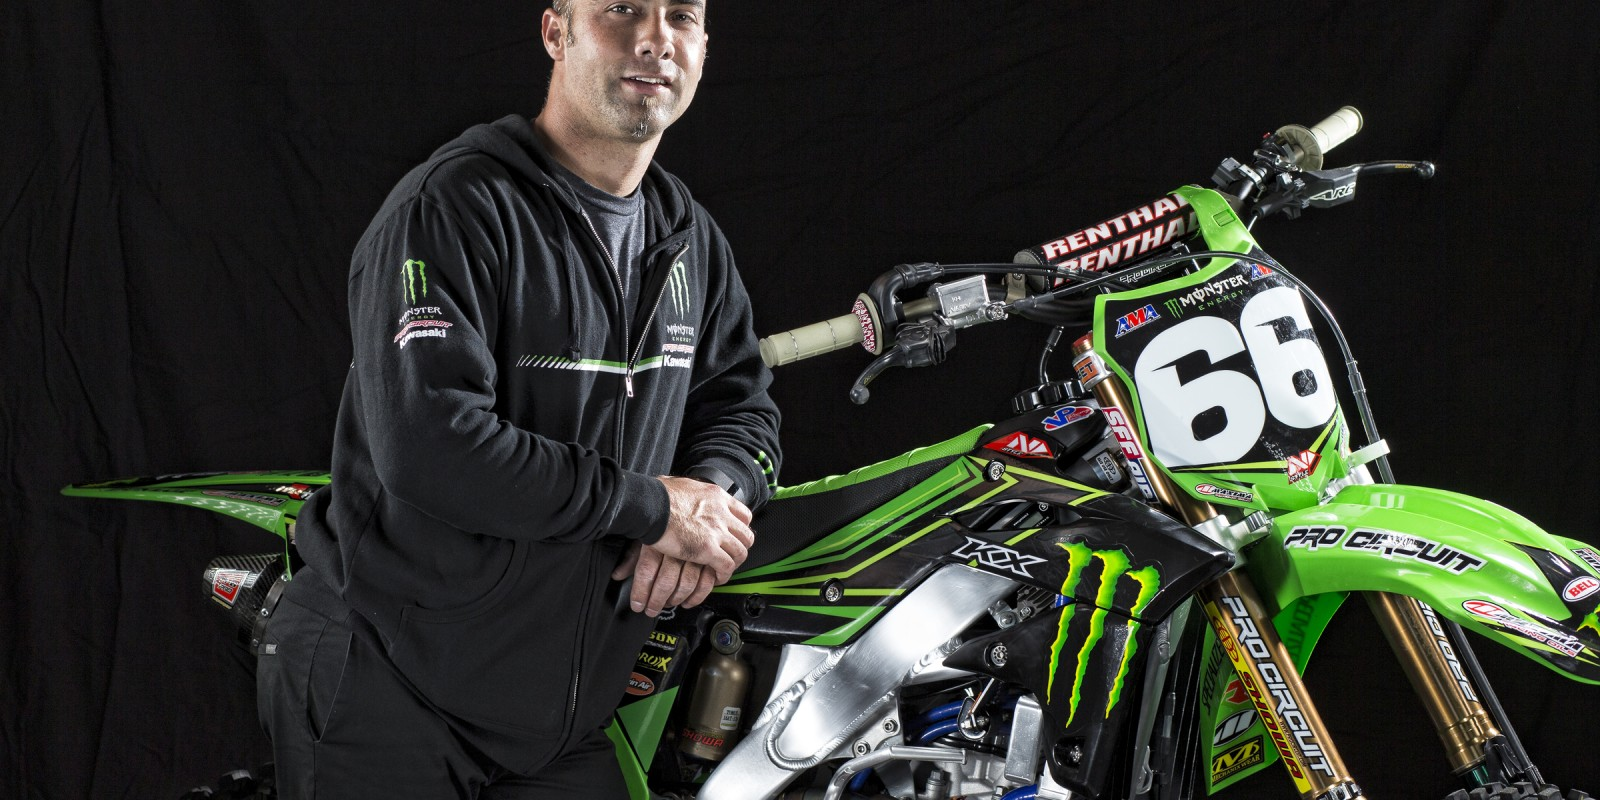 Jon Primo from Monster Energy Pro Circuit Kawasaki